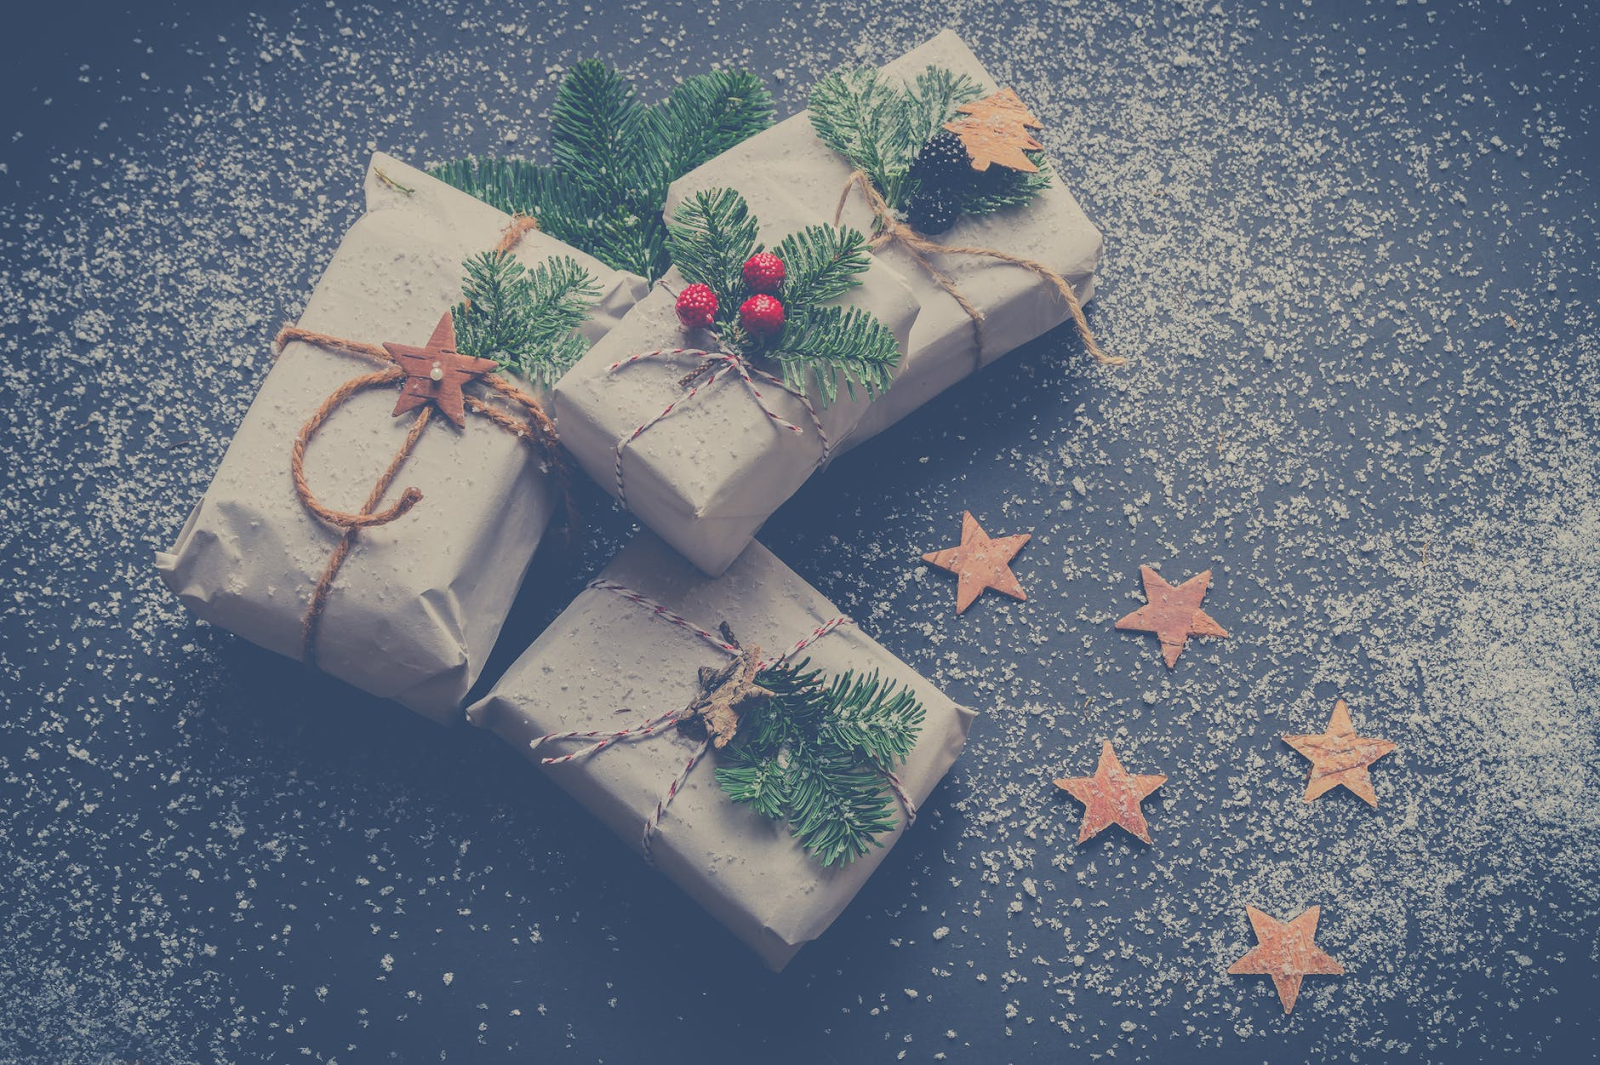 Four presents wrapped in off white paper and tied with twine, evergreen branches and berries against a blue background with snow and cardboard stars.